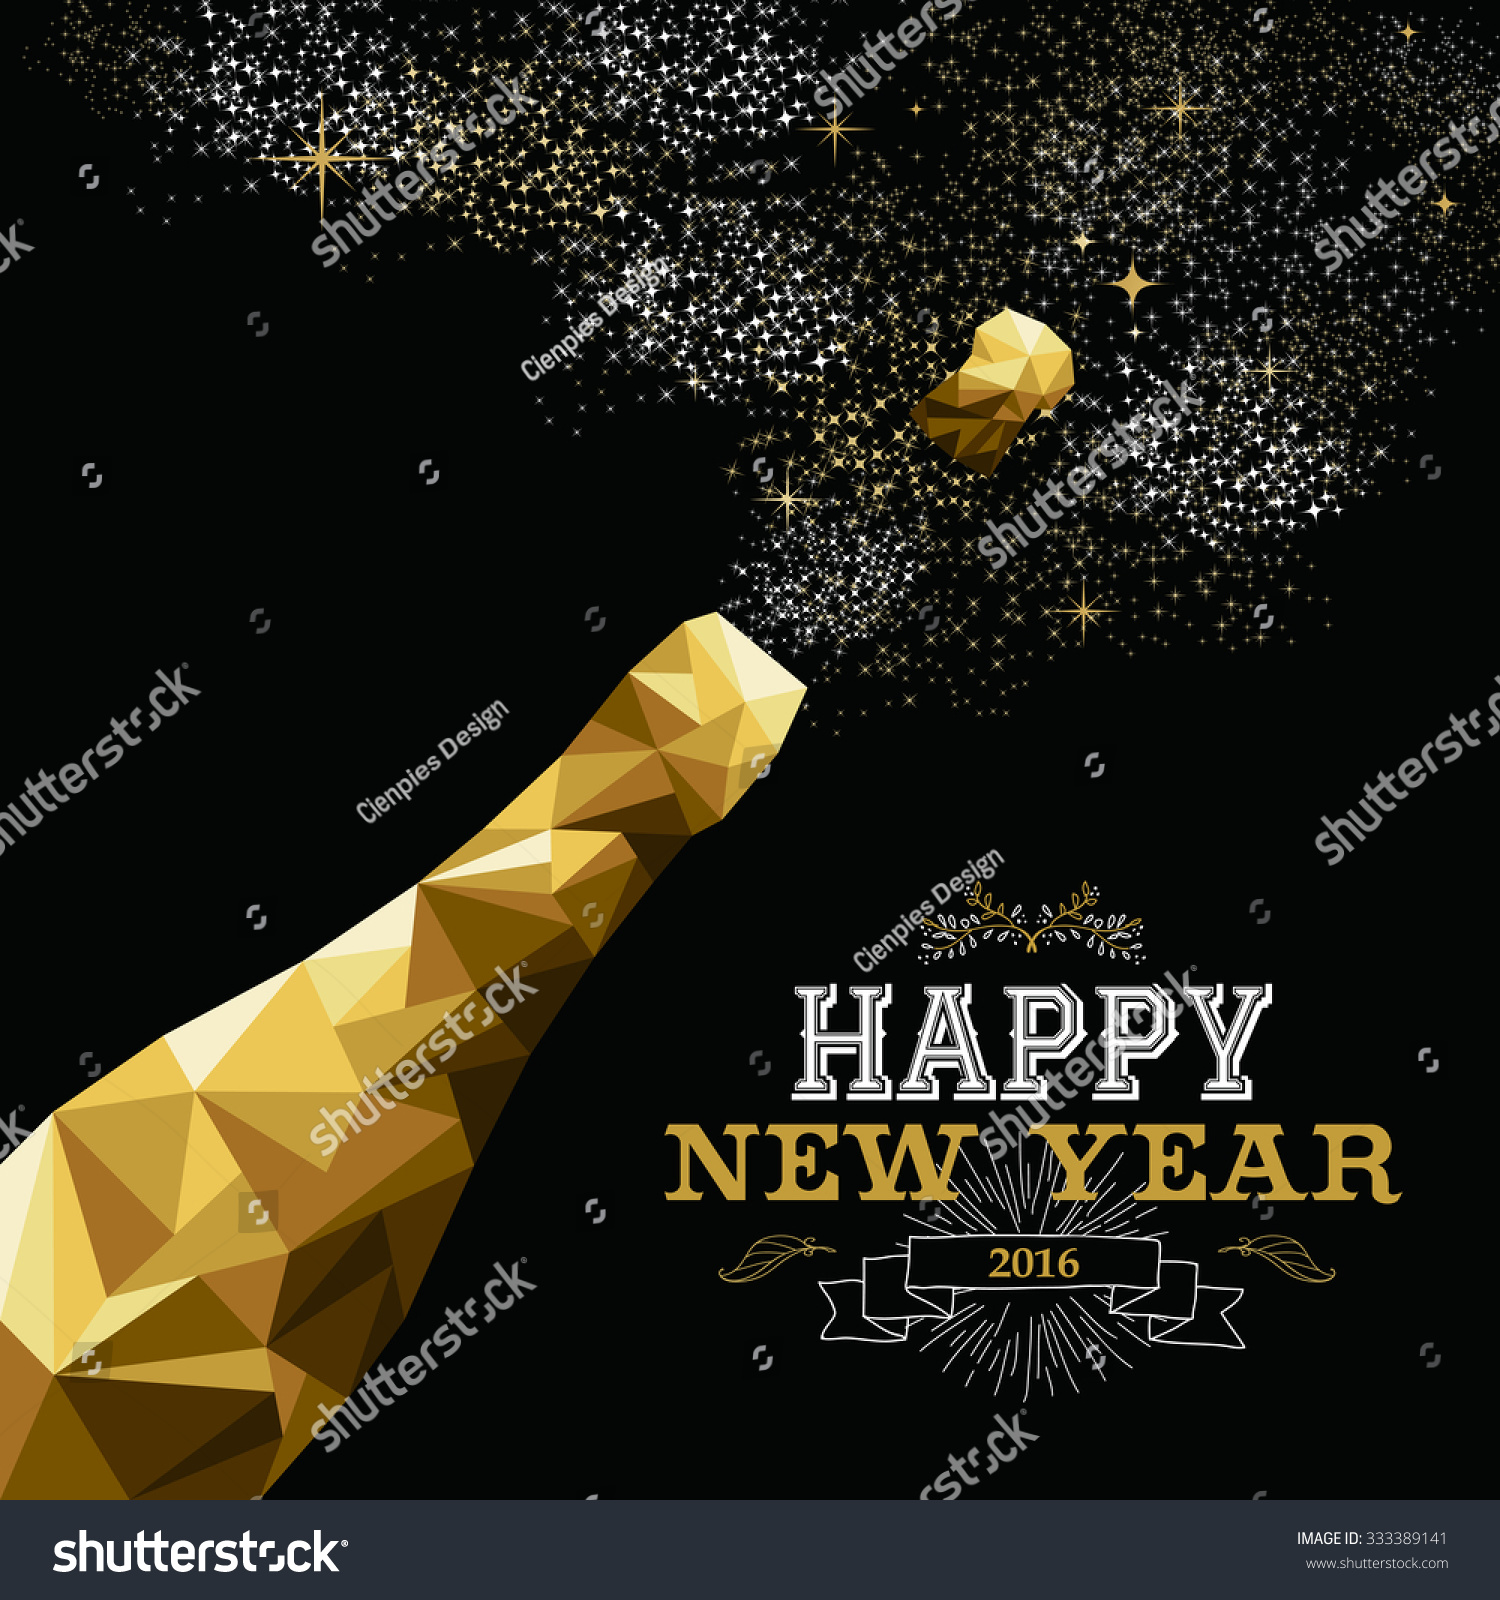 Happy new year 2016 fancy gold champagne bottle in hipster triangle low poly style Ideal for greeting card or elegant holiday party invitation EPS10 vector